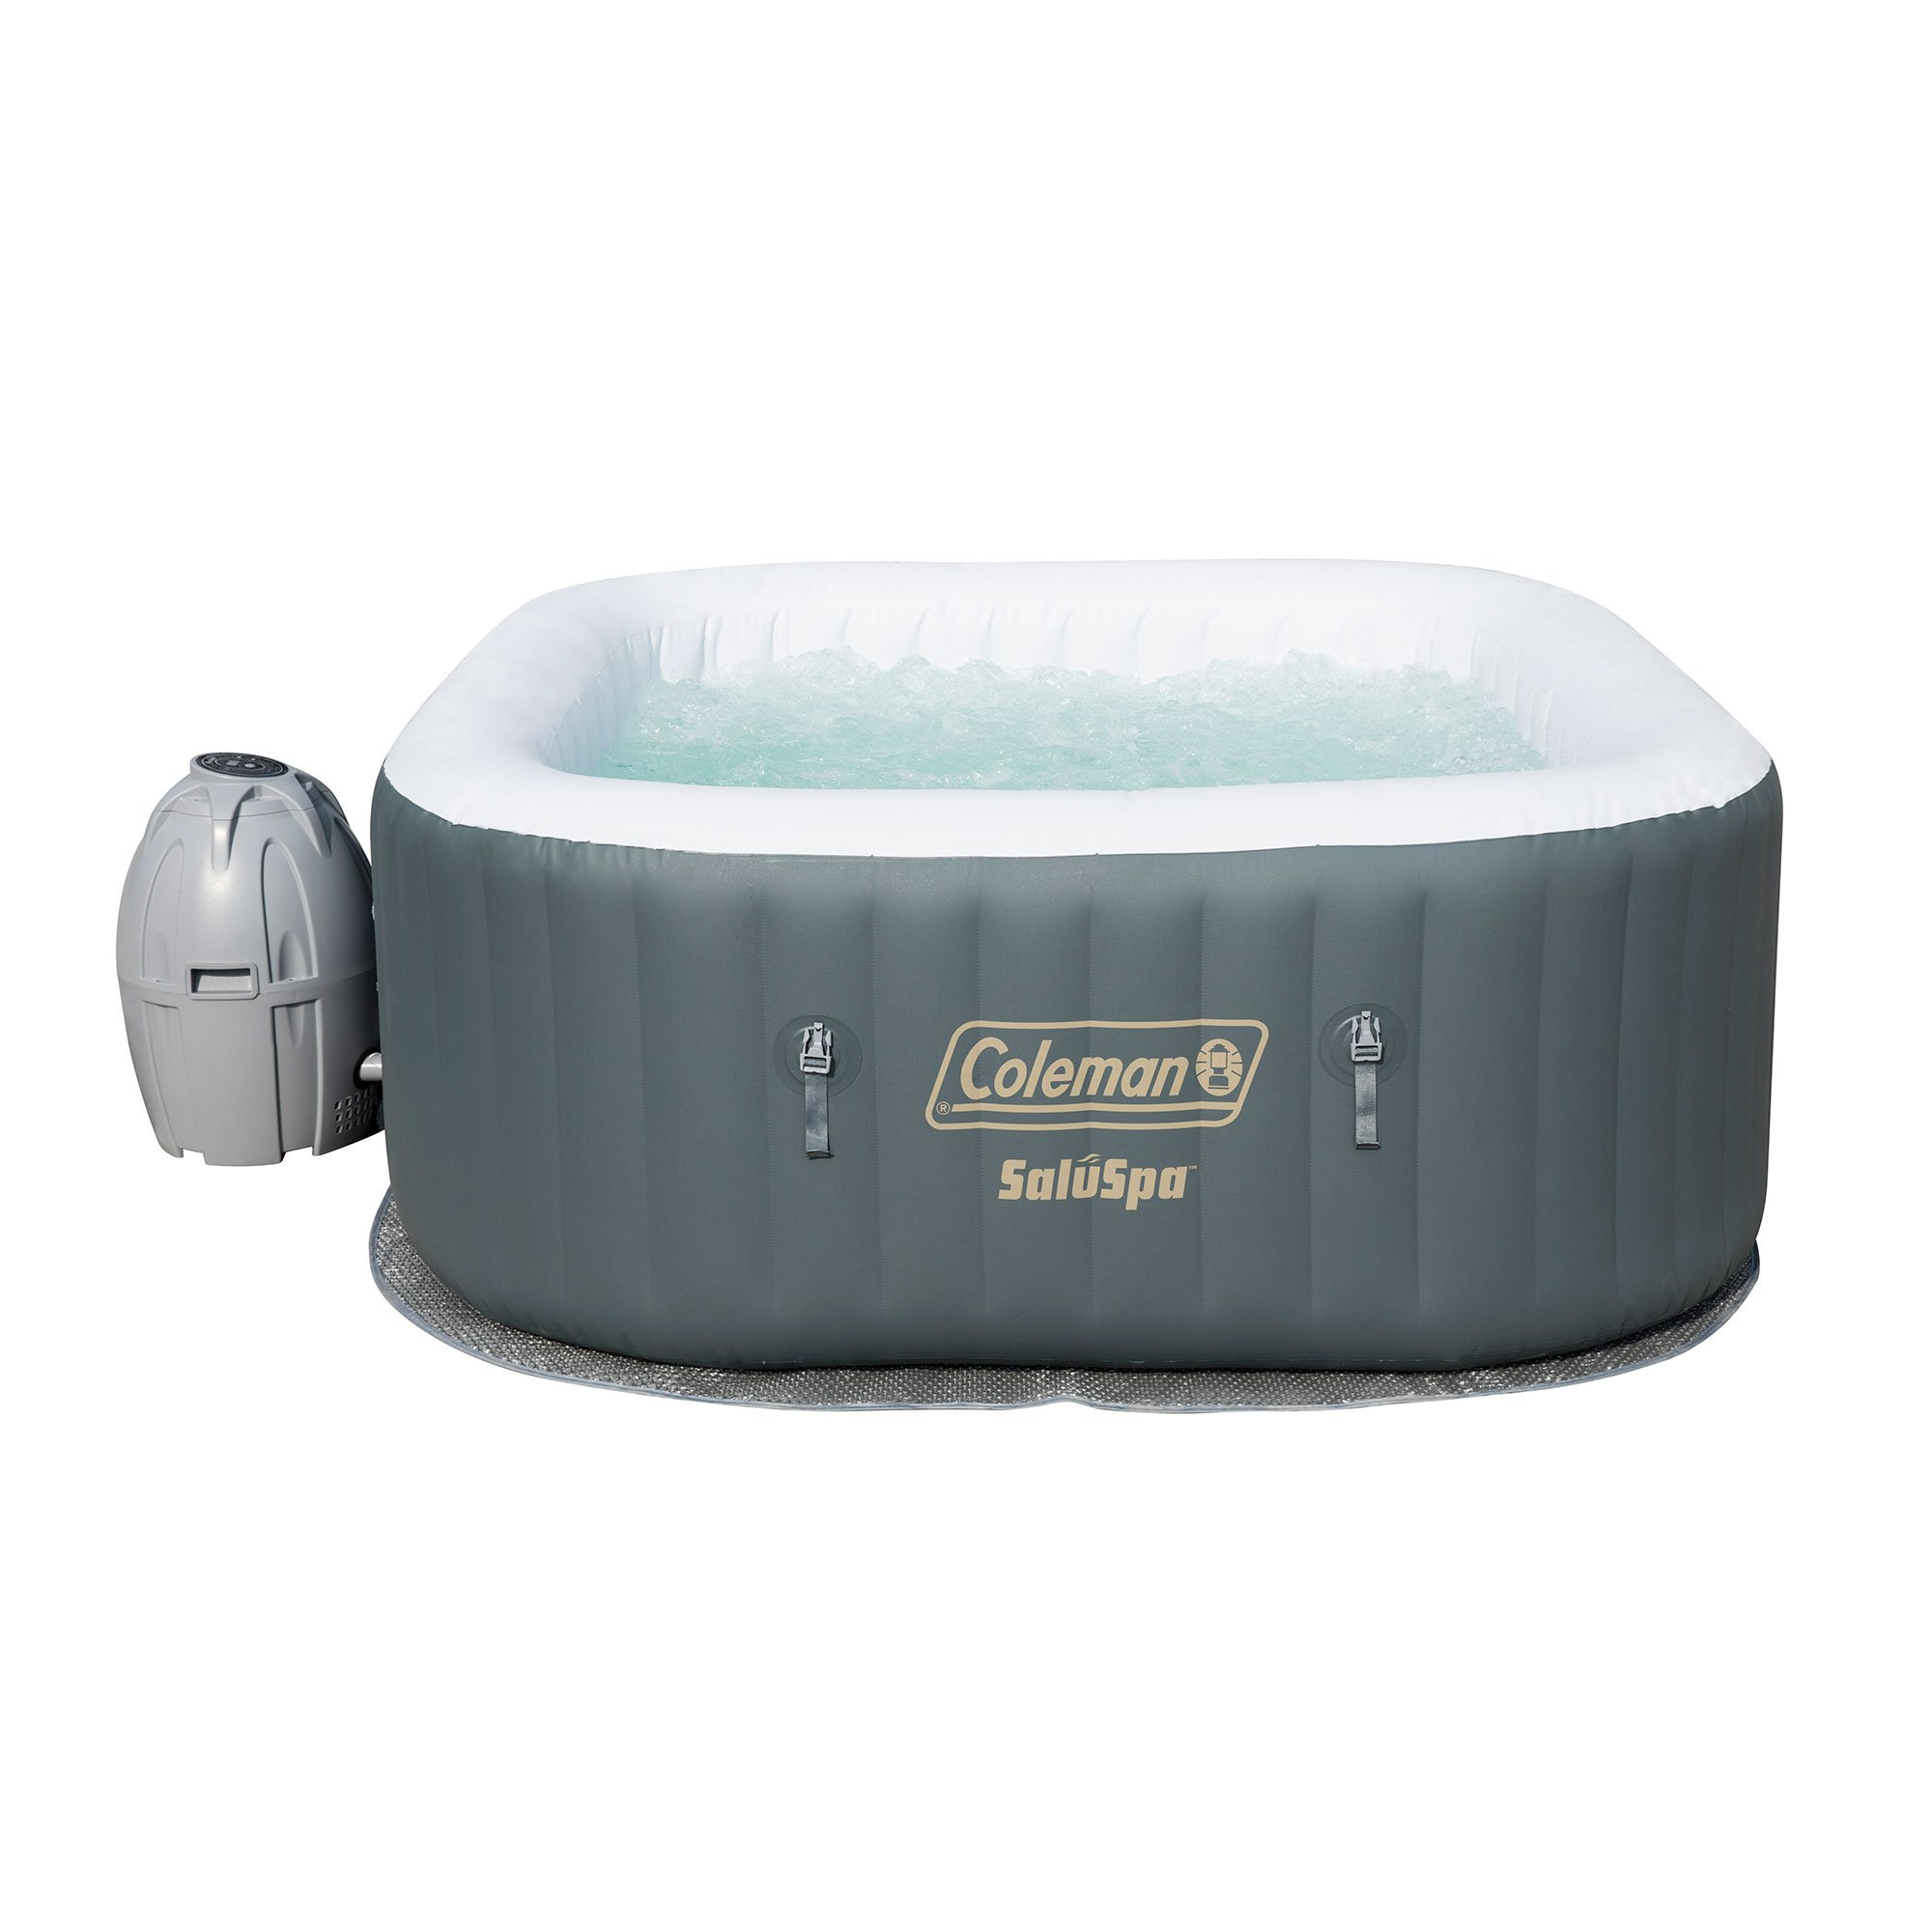 Best Rated In Outdoor Hot Tubs Amp Helpful Customer Reviews